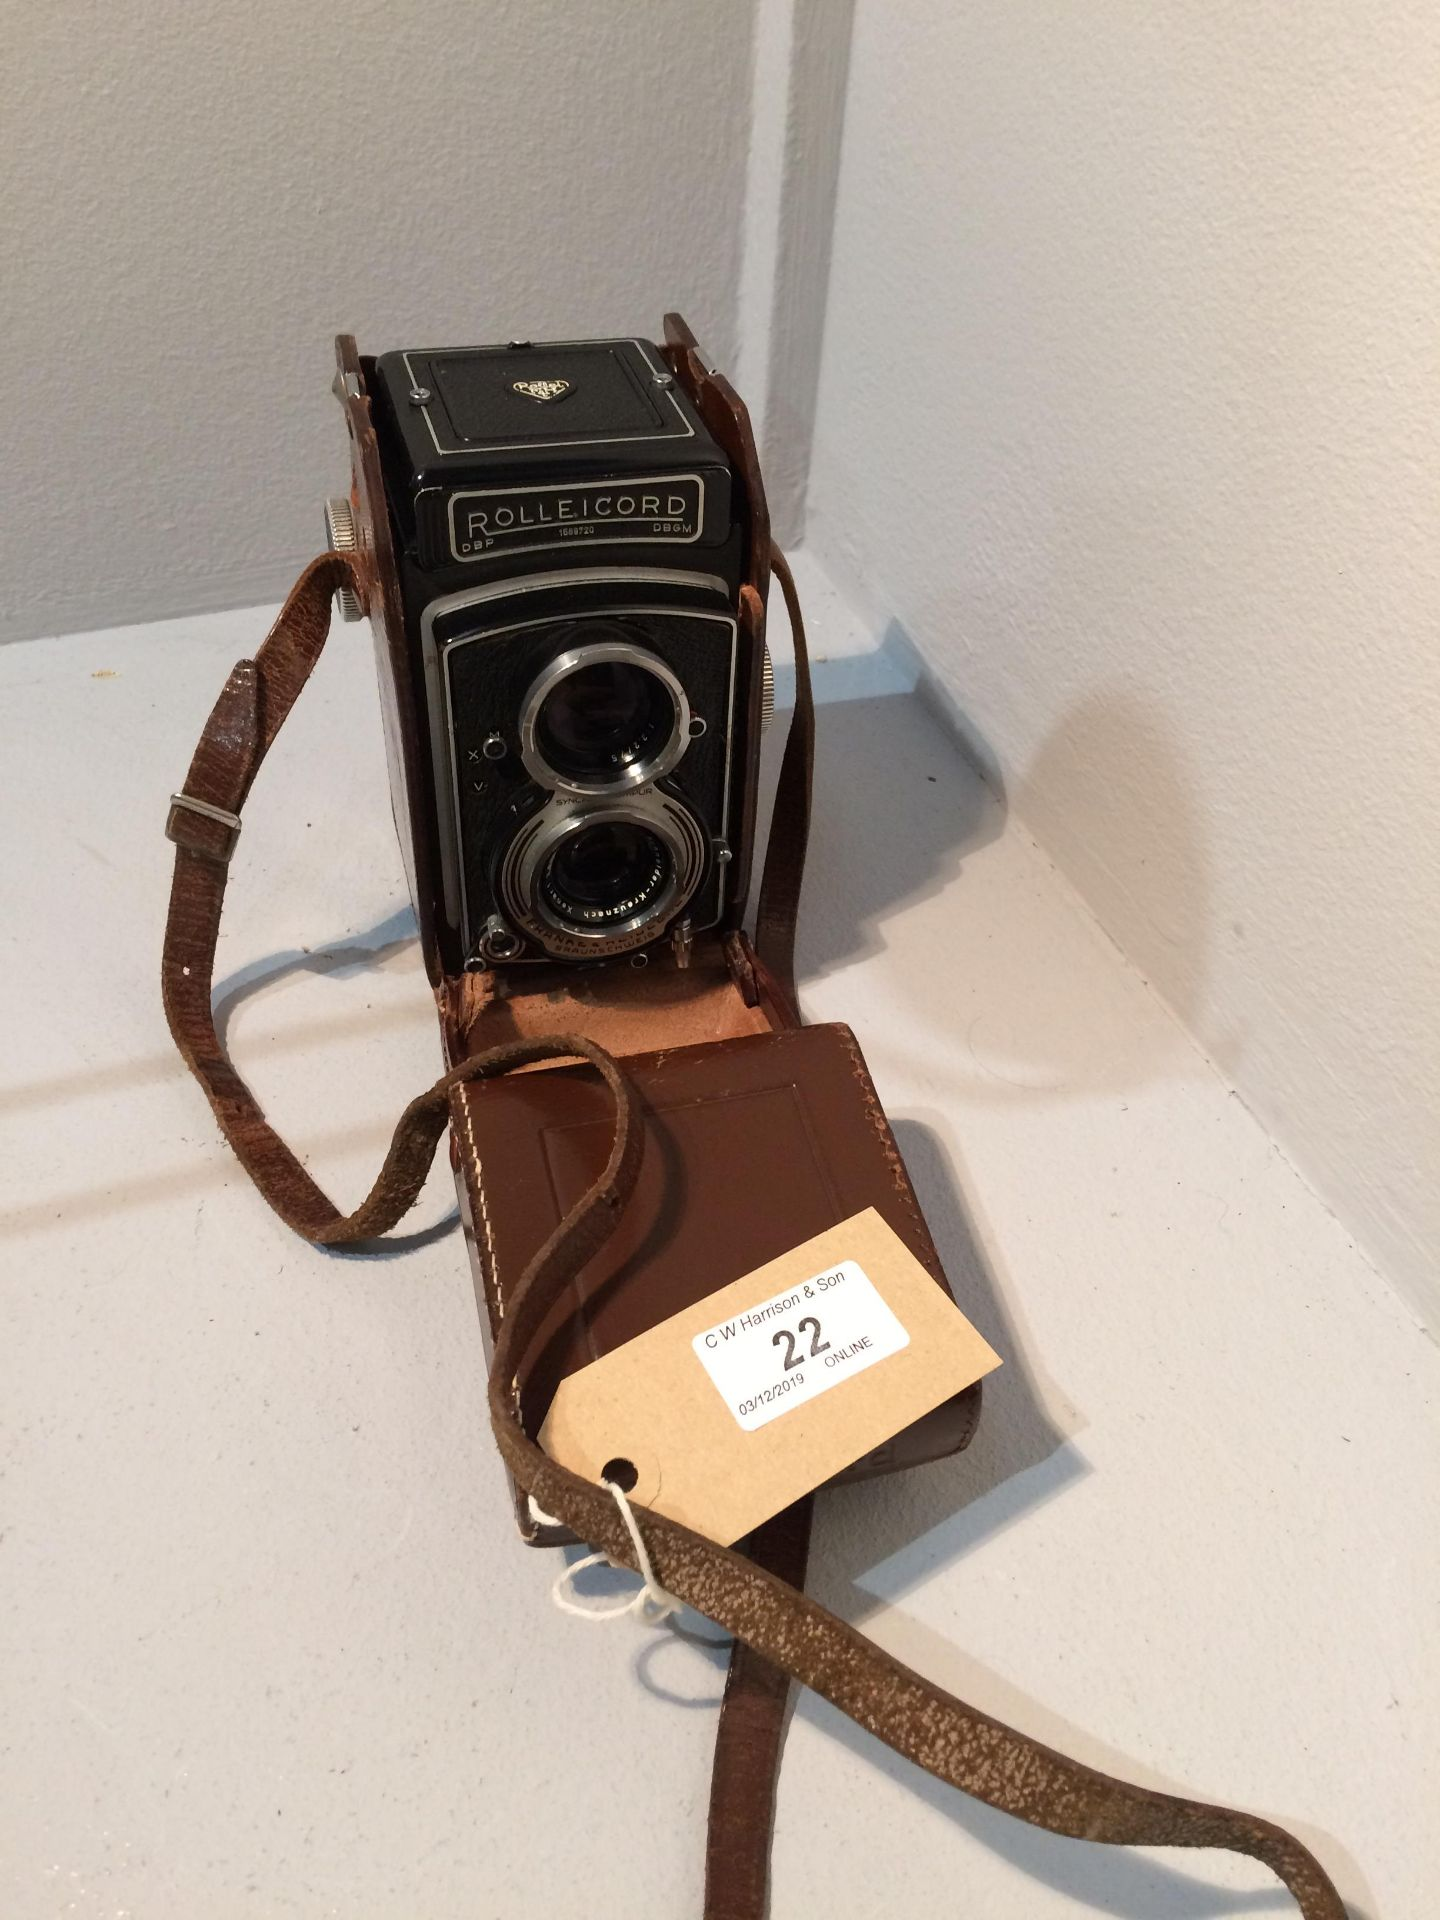 Lot 22 - Rolleicord Franke & Heindecke 1589720 camera with Schneider 1..